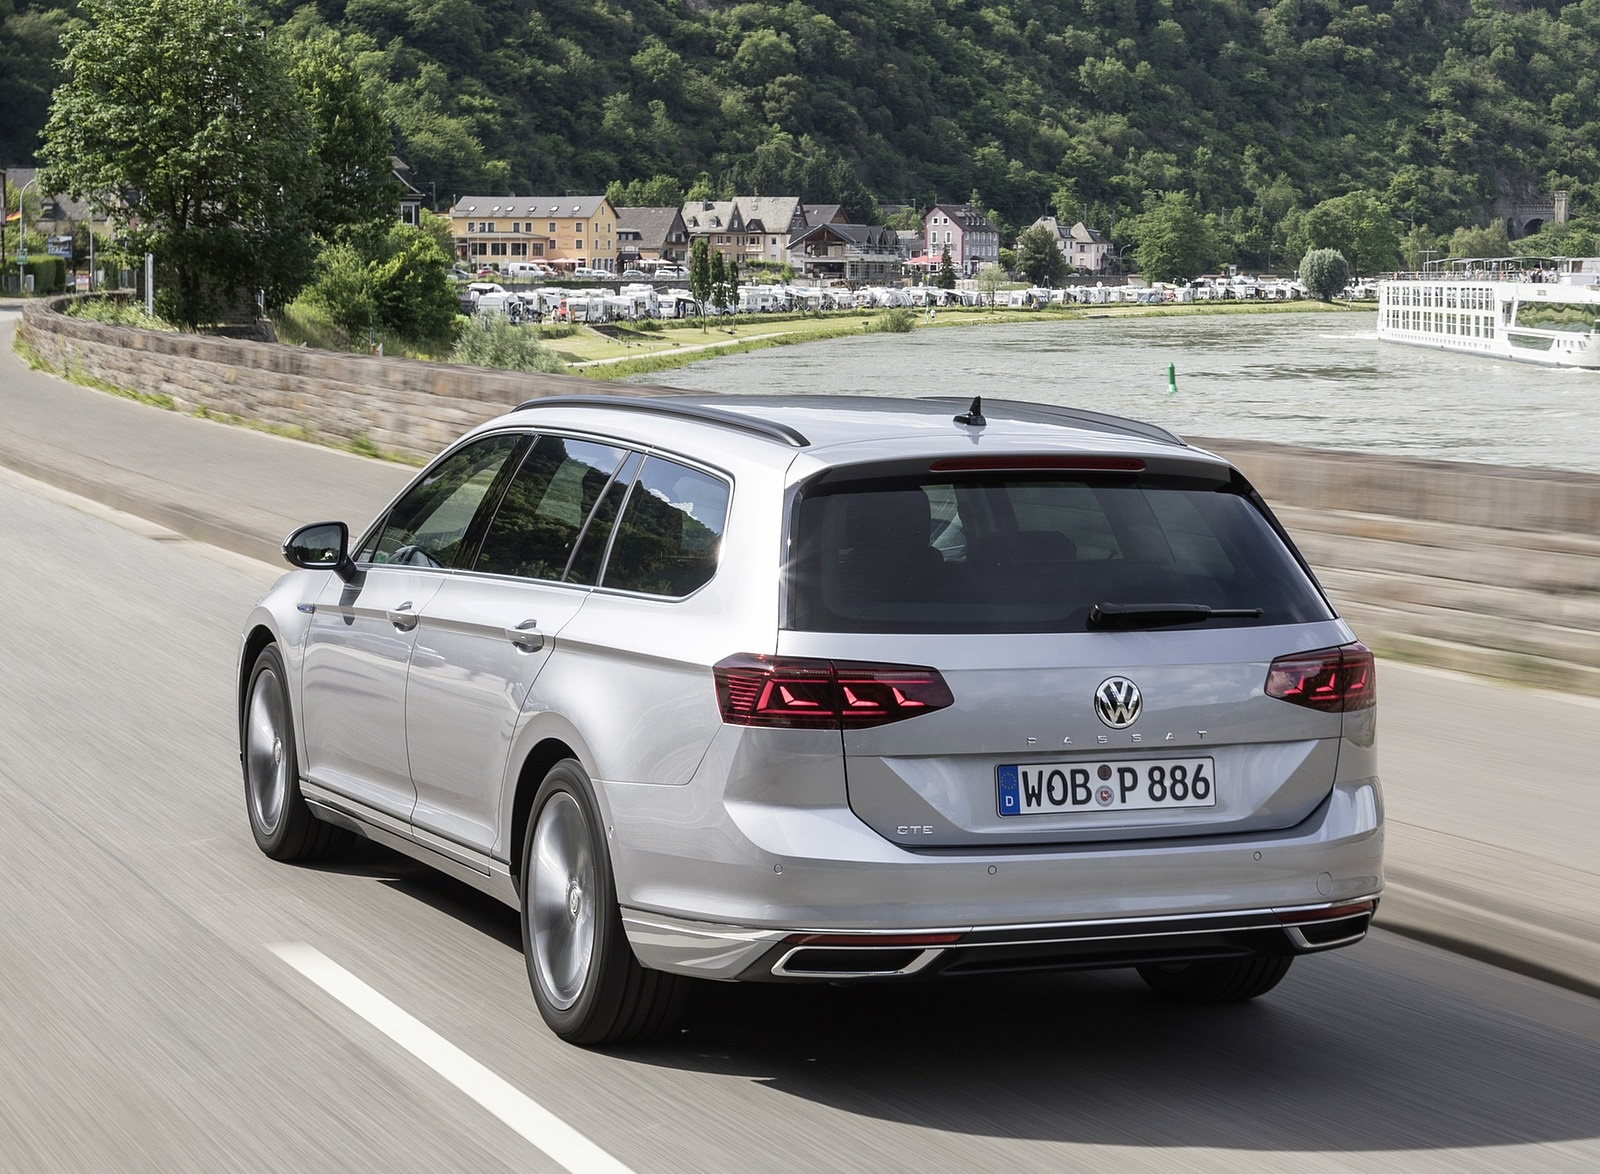 2020 Volkswagen Passat GTE Variant (Plug-In Hybrid EU-Spec) Rear Three-Quarter Wallpapers (9)